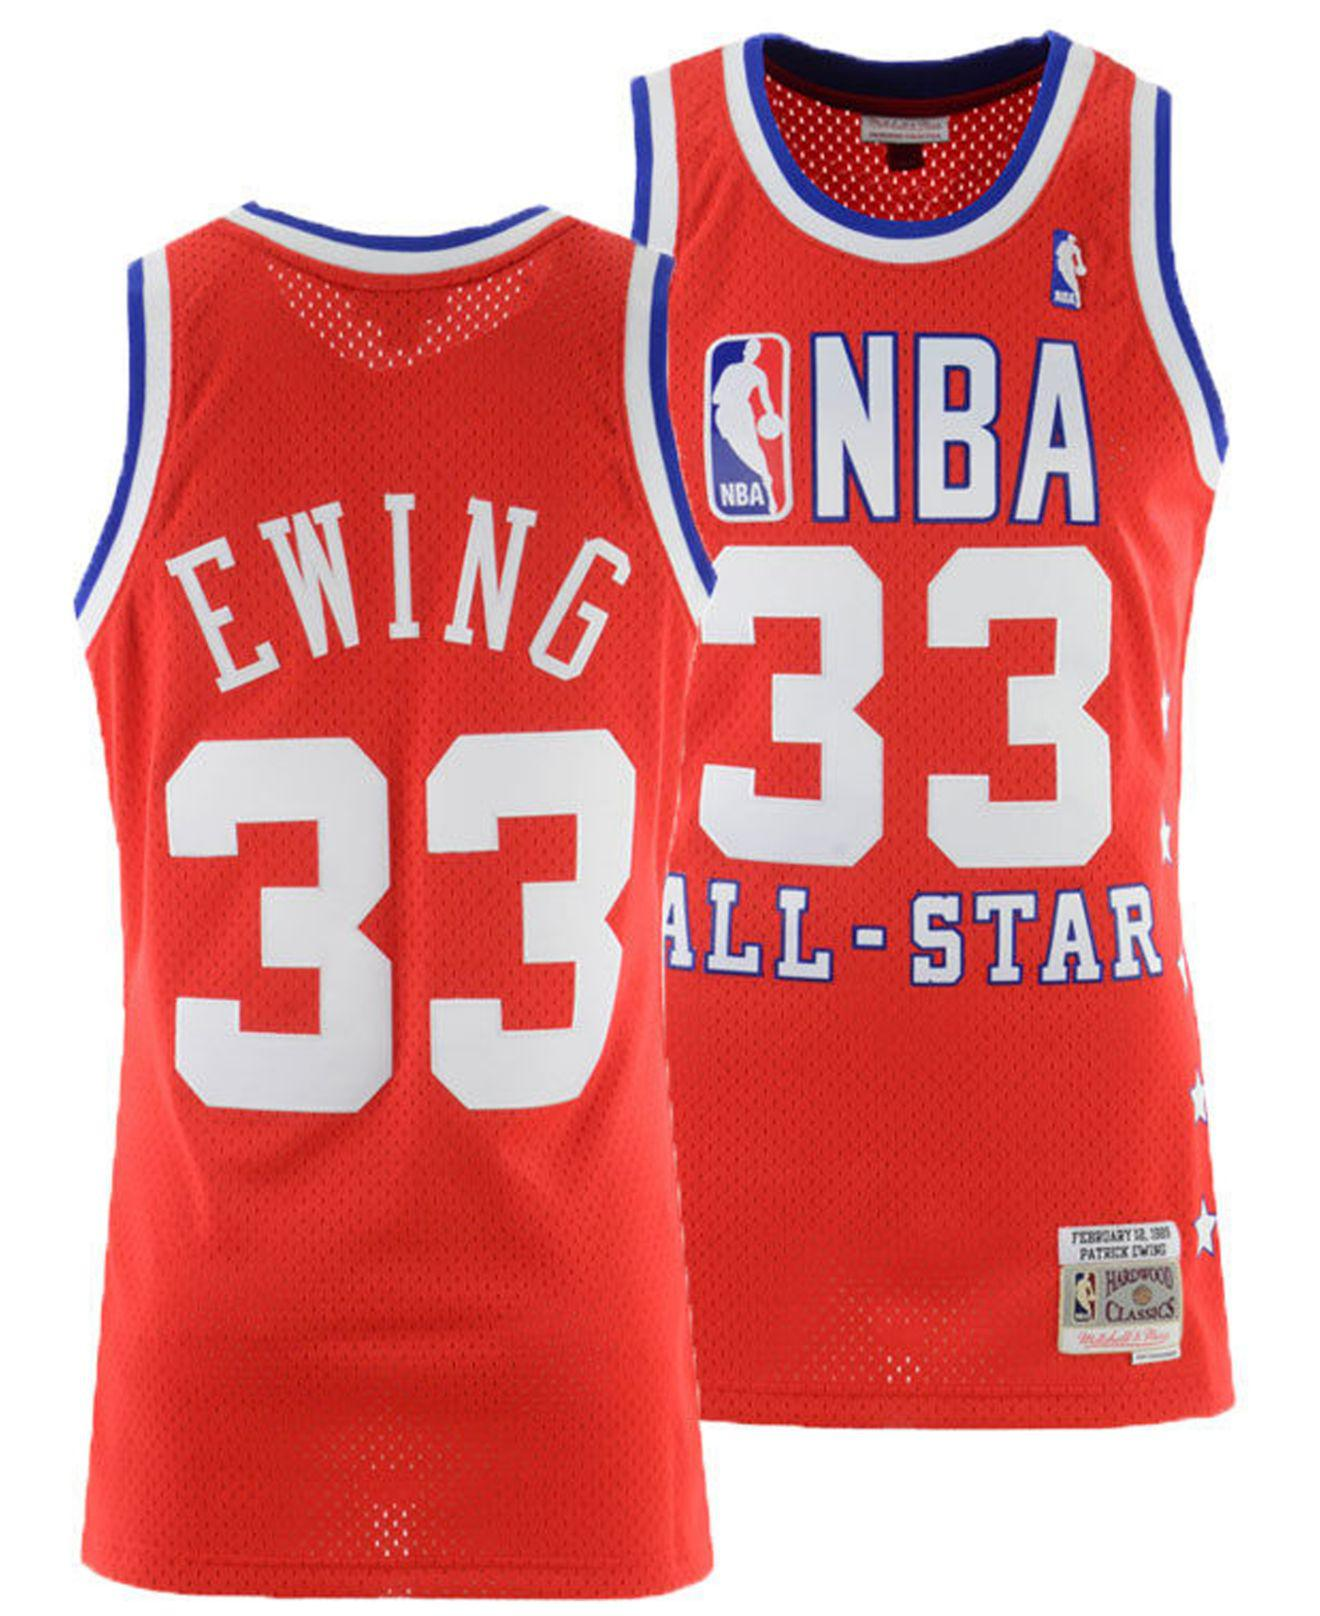 check out 6296d ad9ff Men's Red Patrick Ewing Nba All Star 1989 Swingman Jersey